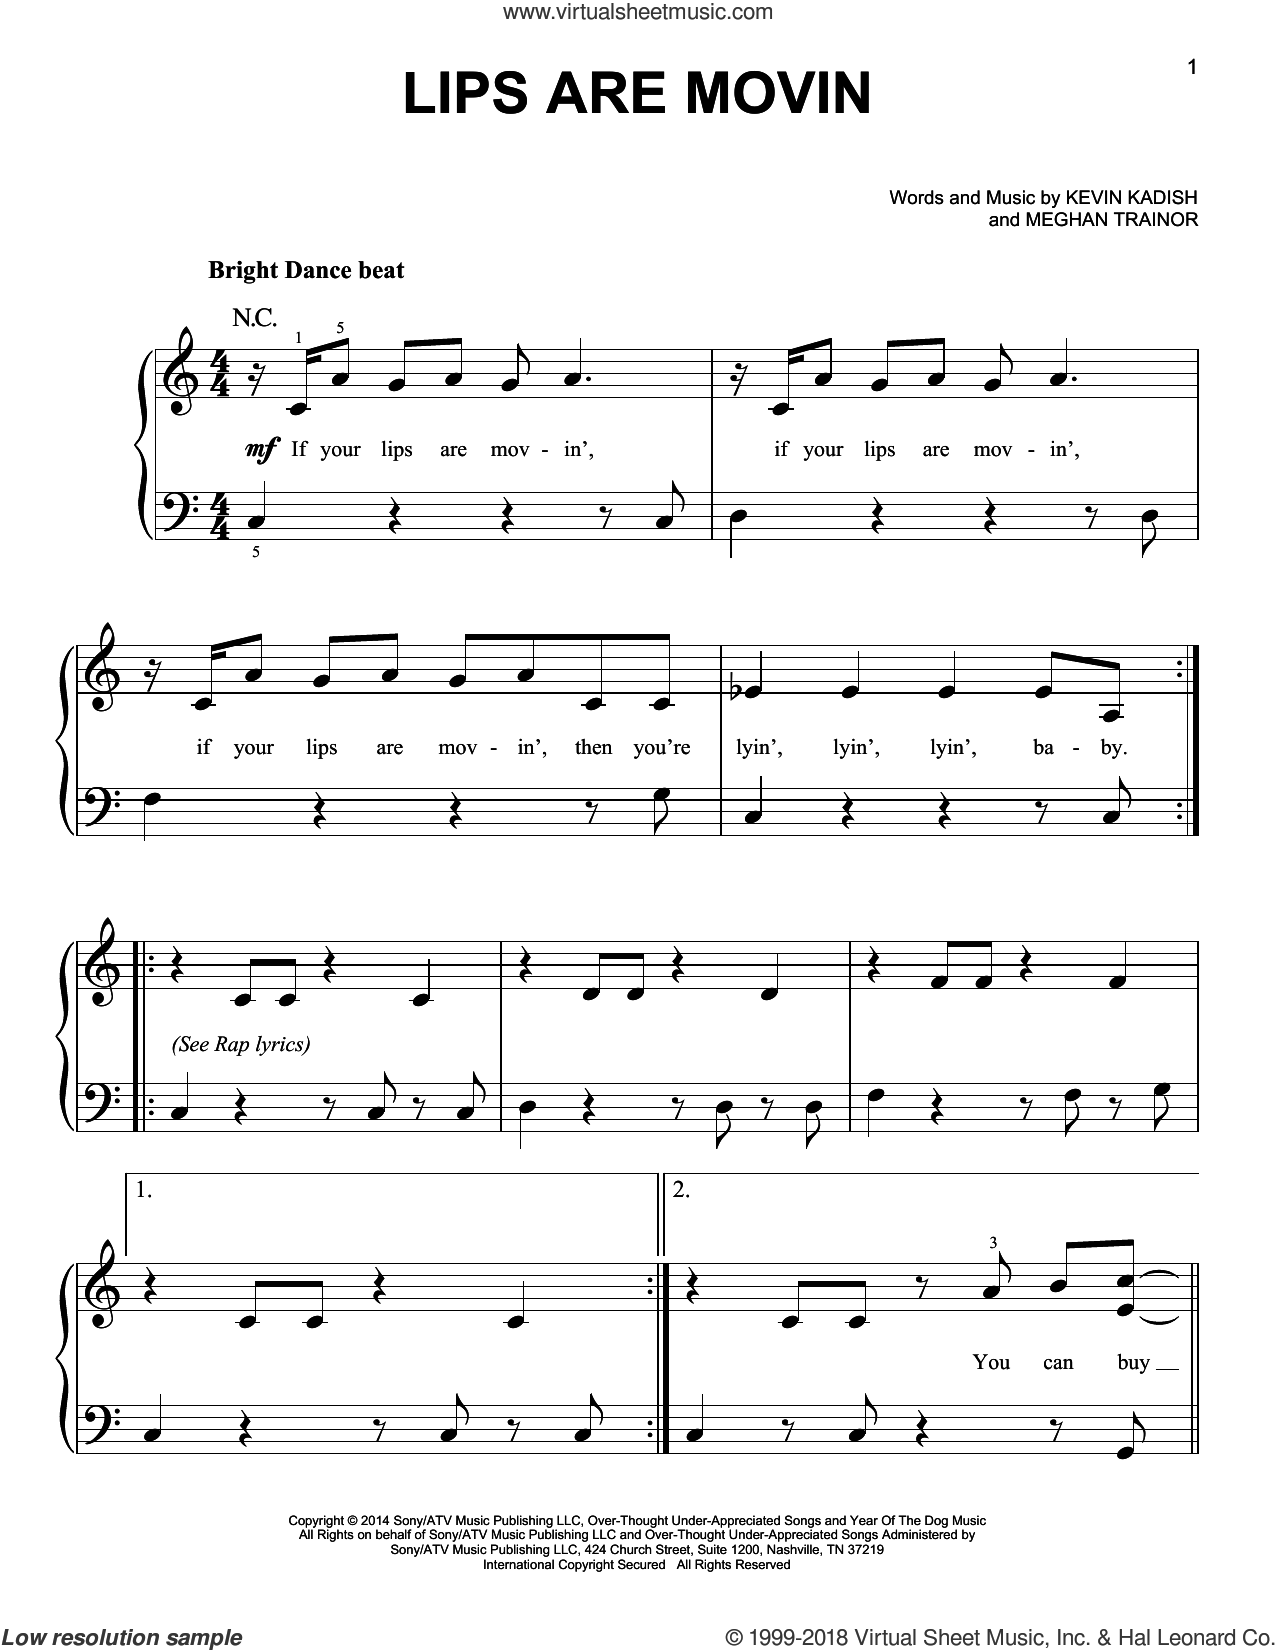 Lips Are Movin sheet music for piano solo by Meghan Trainor and Kevin Kadish, easy skill level